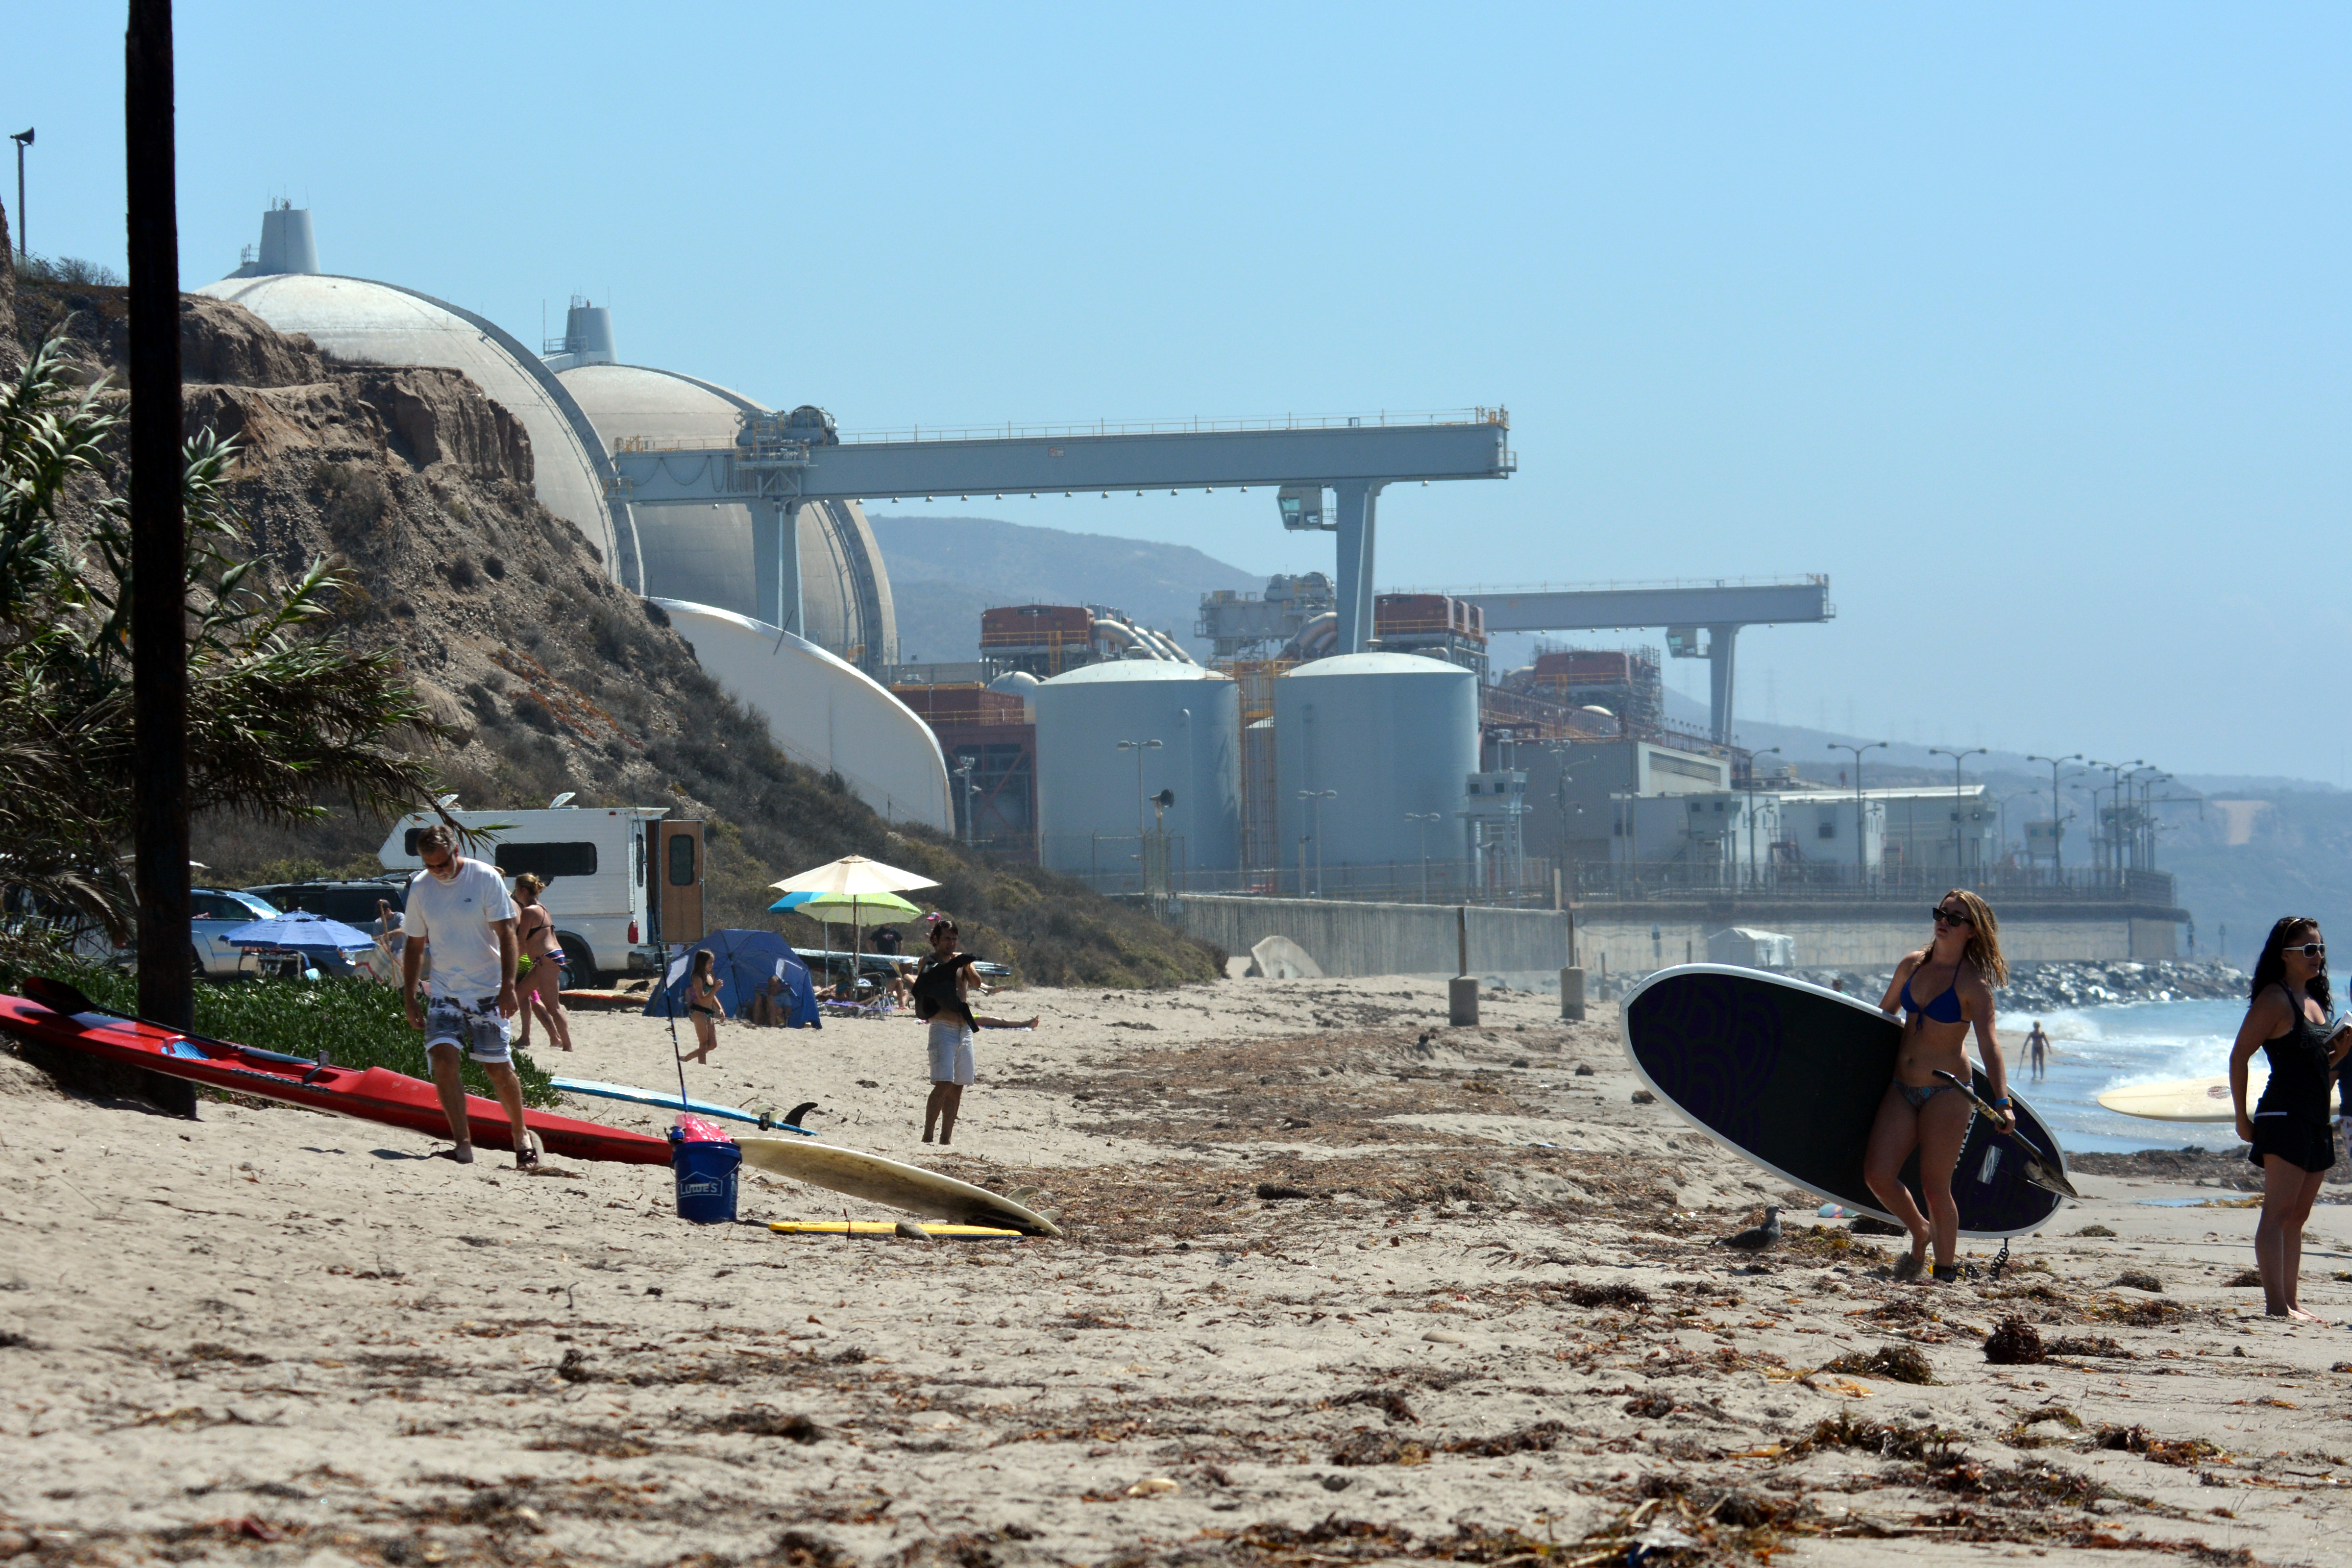 San Onofre Nuclear Generating Station - Wikipedia on doheny sb campground map, doheny state beach camping map, doheny campsite map, mueller state park campground map,